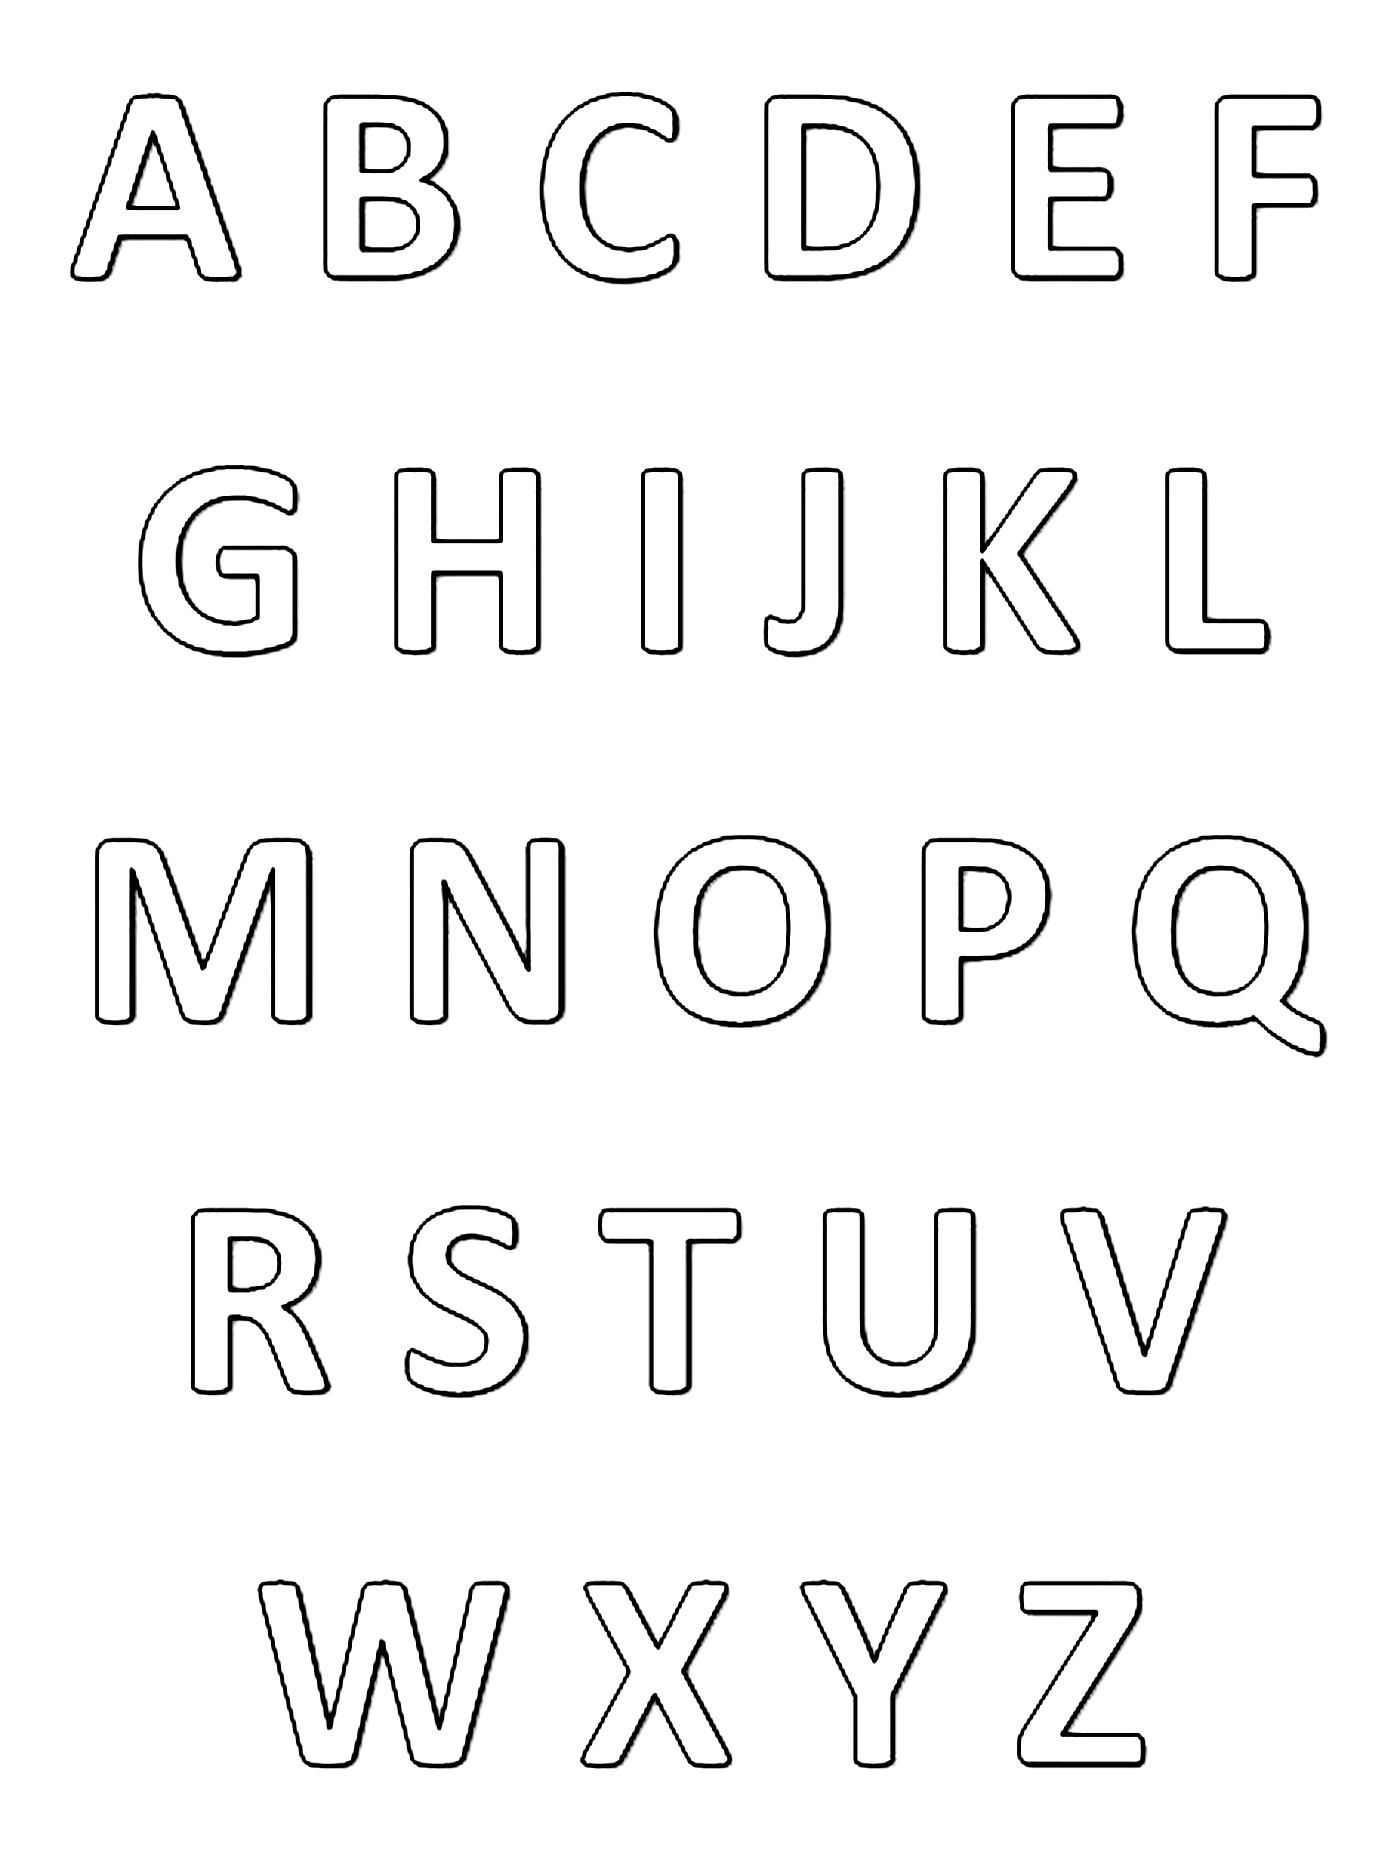 Very Simple Alphabet Worksheet To Print Amp Color From The